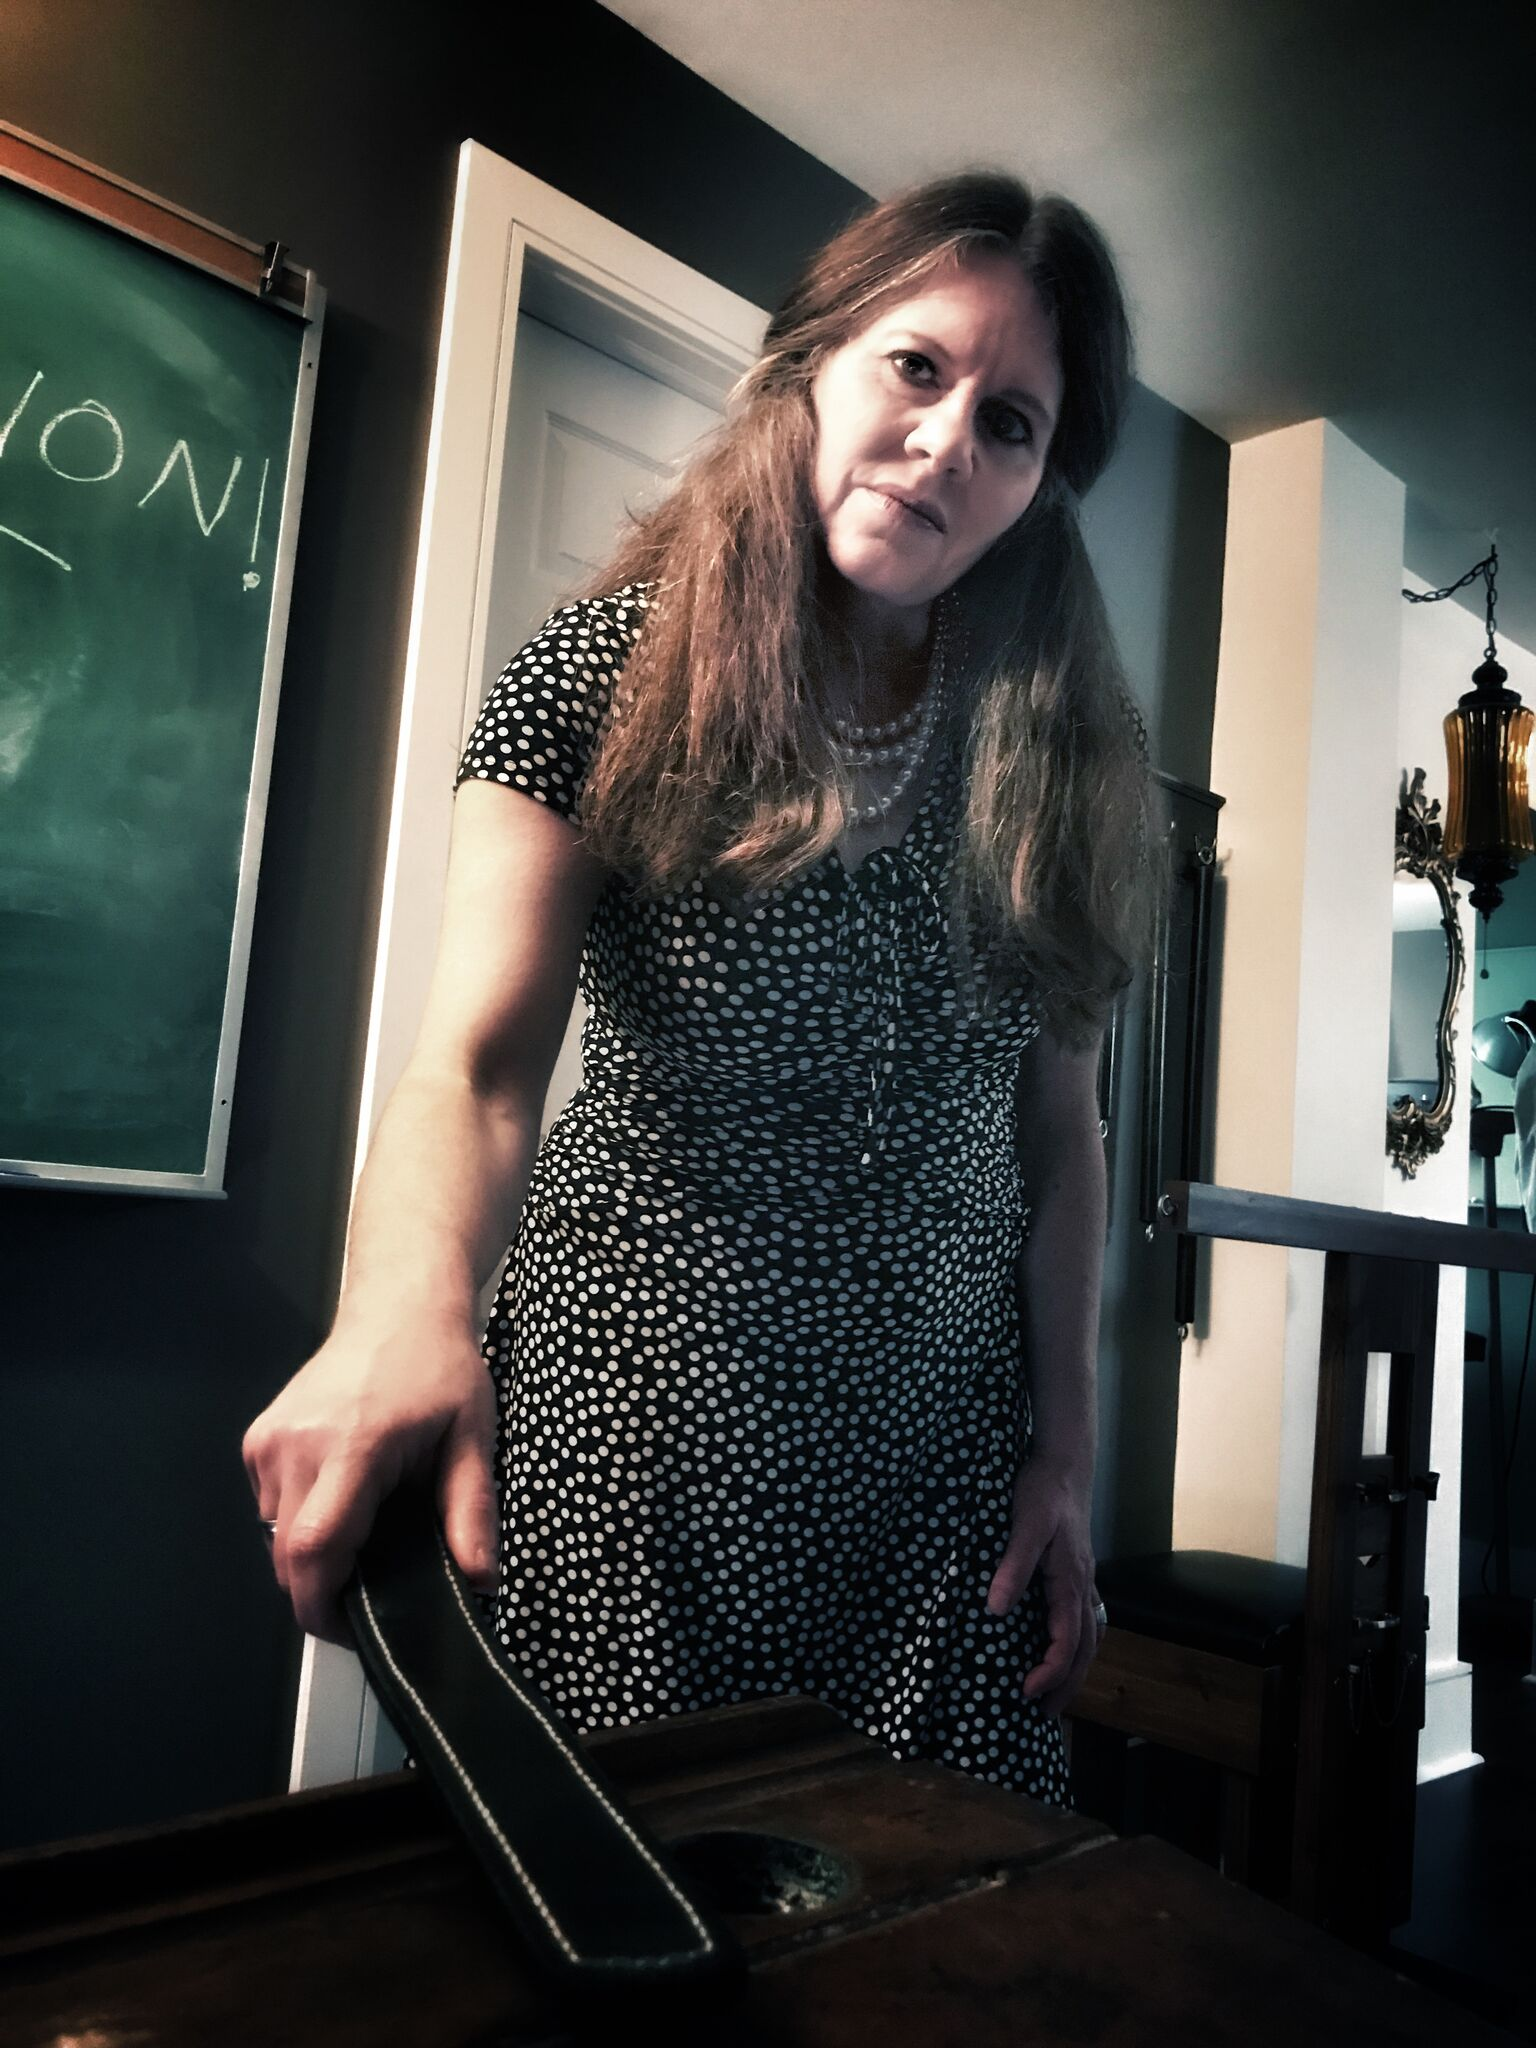 MISS BERNADETTE - DISCIPLINARIAN & SPANKERToronto, Ontario, Canada I am an elegant mature disciplinarian who specialises in spanking and associated role plays. I have 15 years of experience in corporal punishment and I continue to love it as much today as I did when I began all those years ago. I understand the mental high that goes along with the physical pain. It is a wonderful combination that can leave one totally fulfilled and satisfied. I hope to impart that feeling to you.Since I am a lifestyle disciplinarian who enjoys corporal punishment in my personal life as well as my professional spanker life, I feel I have a deep understanding and appreciation of what it feels like to be on both ends of the implement. I know exactly what you are experiencing when you are being disciplined and therefore I can tap into your needs and deliver you the finest experience possible.